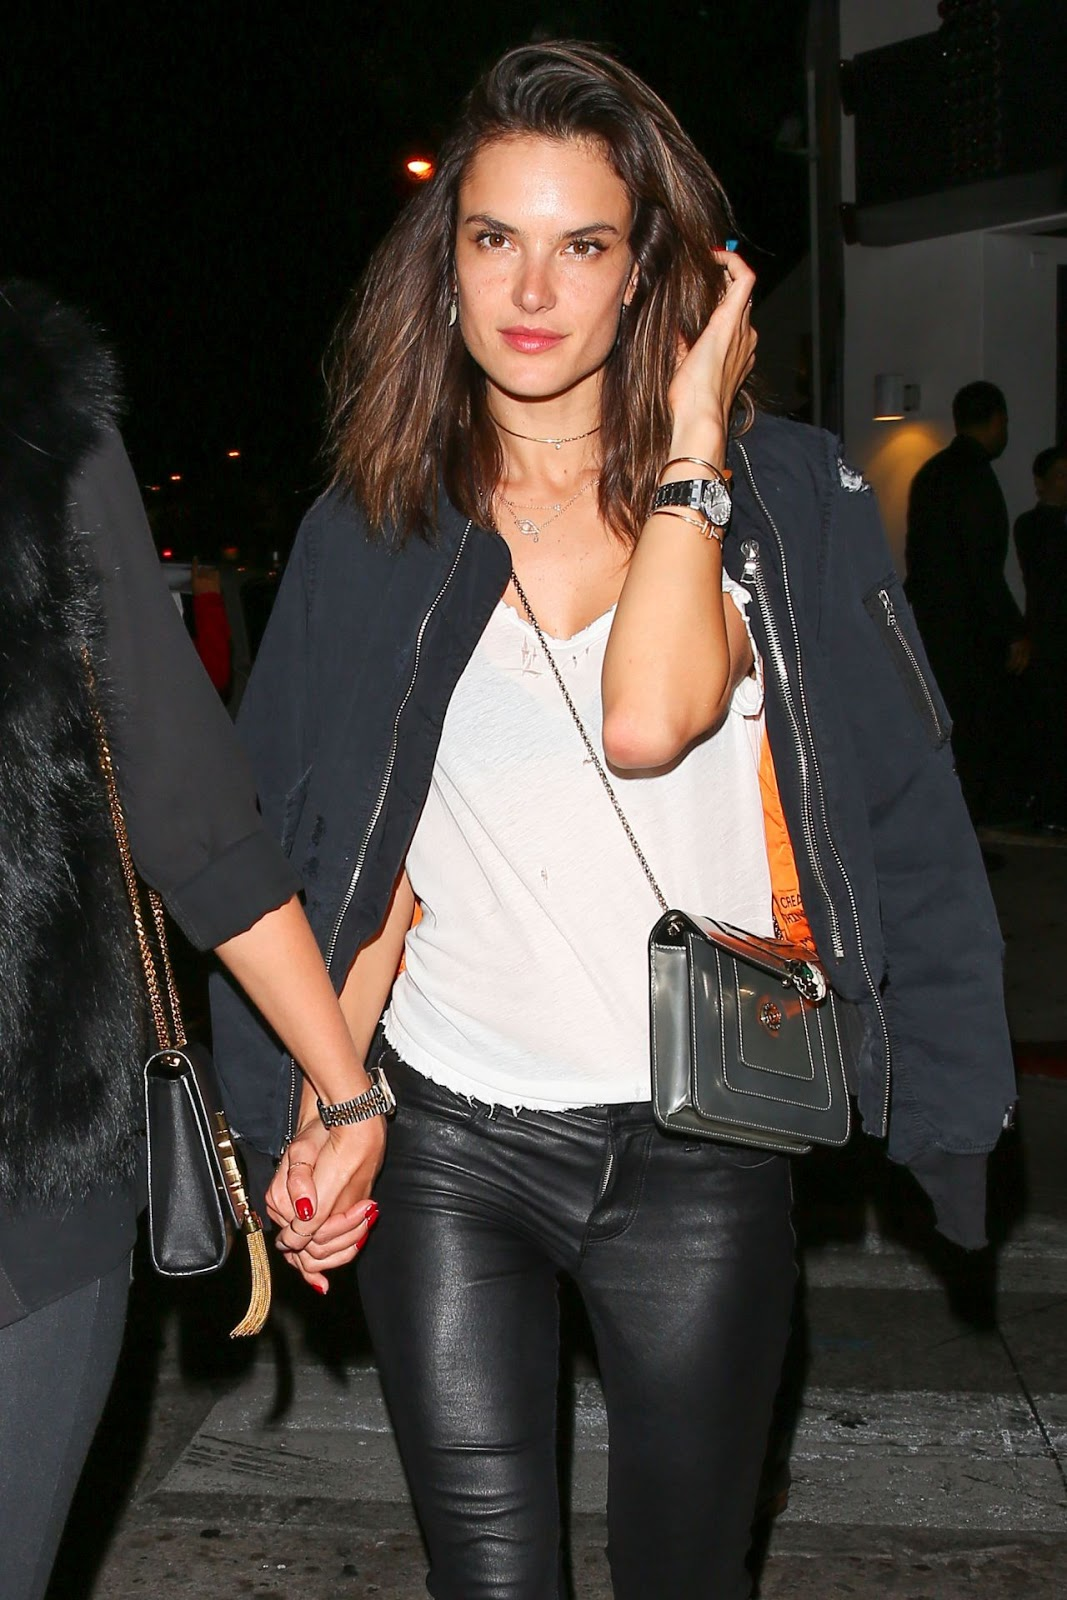 Alessandra Ambrosio parties with pals in leather trousers and bomber jacket